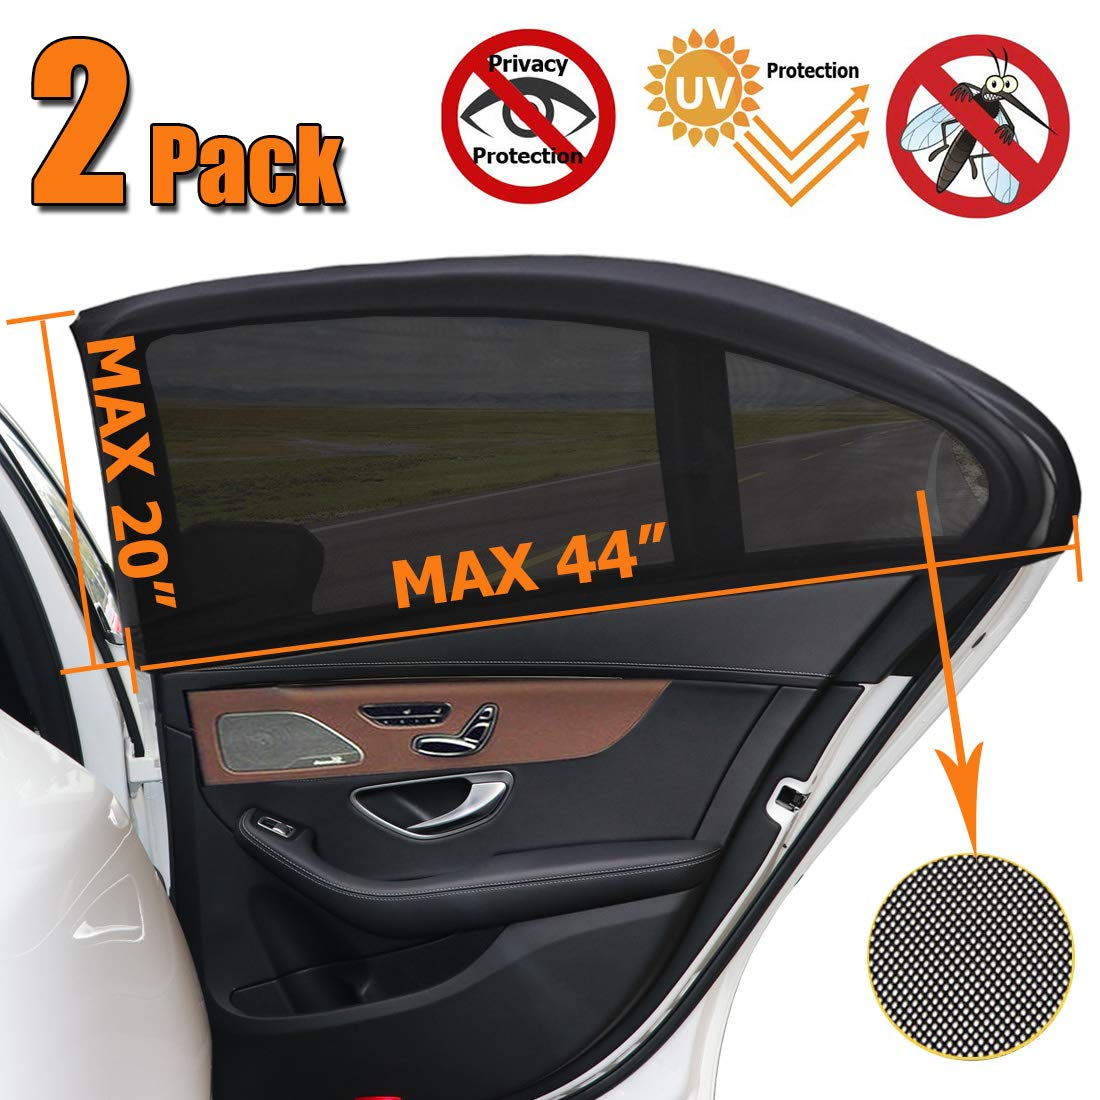 Car Window Shade for Front Window 2 Pack